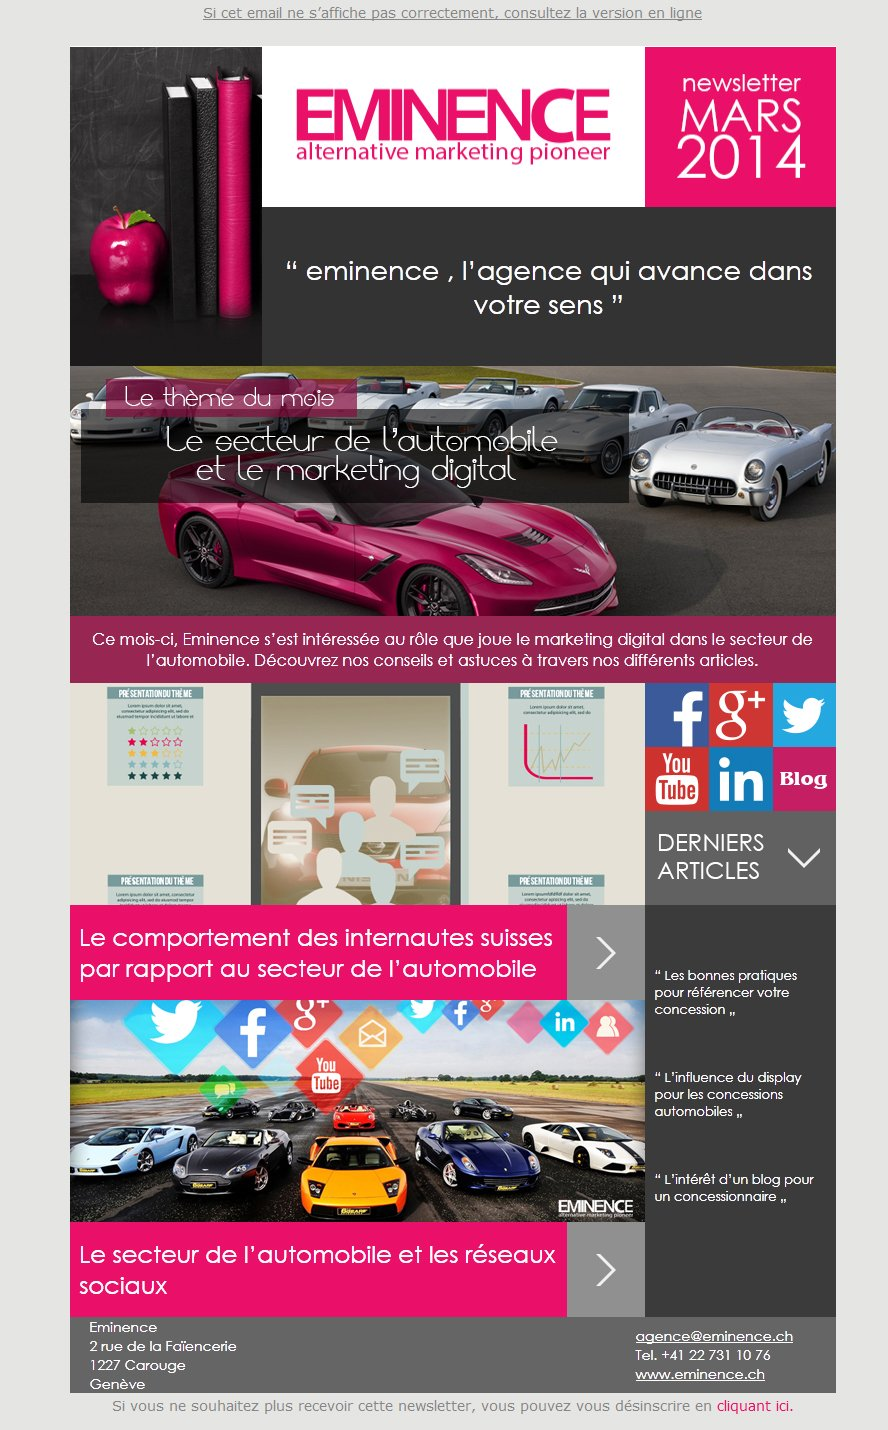 Notre Newsletter du mois de mars : le secteur de l'automobile et le marketing digital